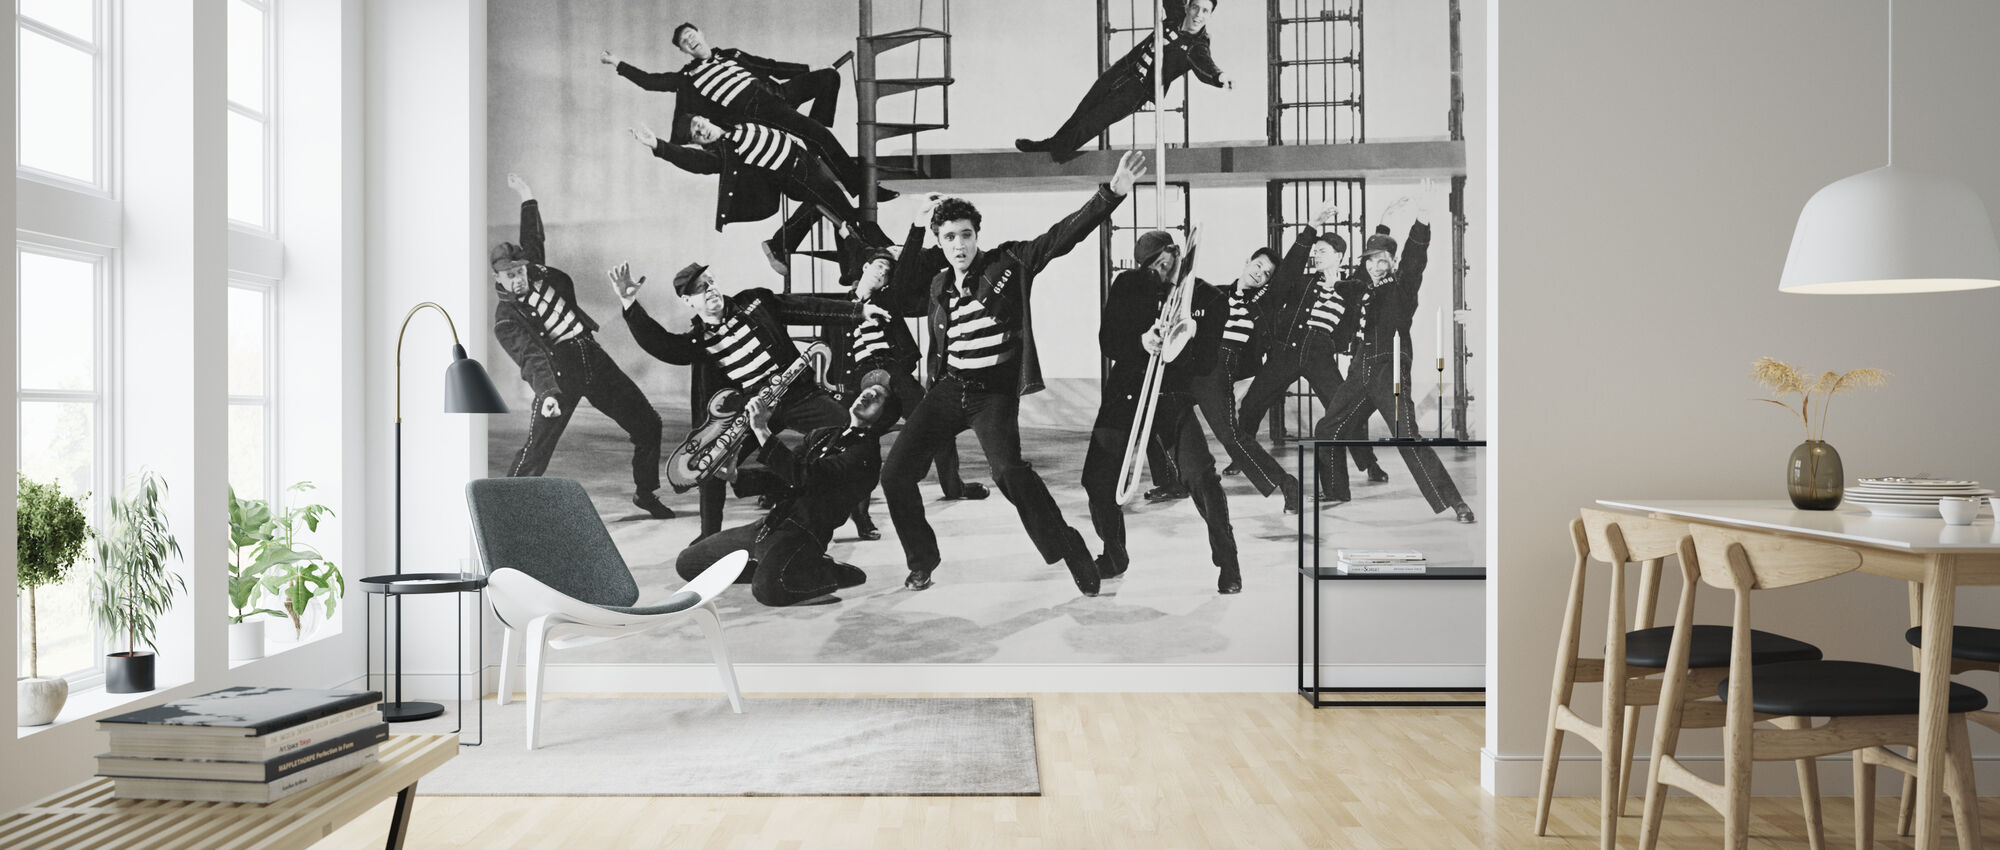 Jailhouse Rock - Elvis Presley - Wallpaper - Living Room